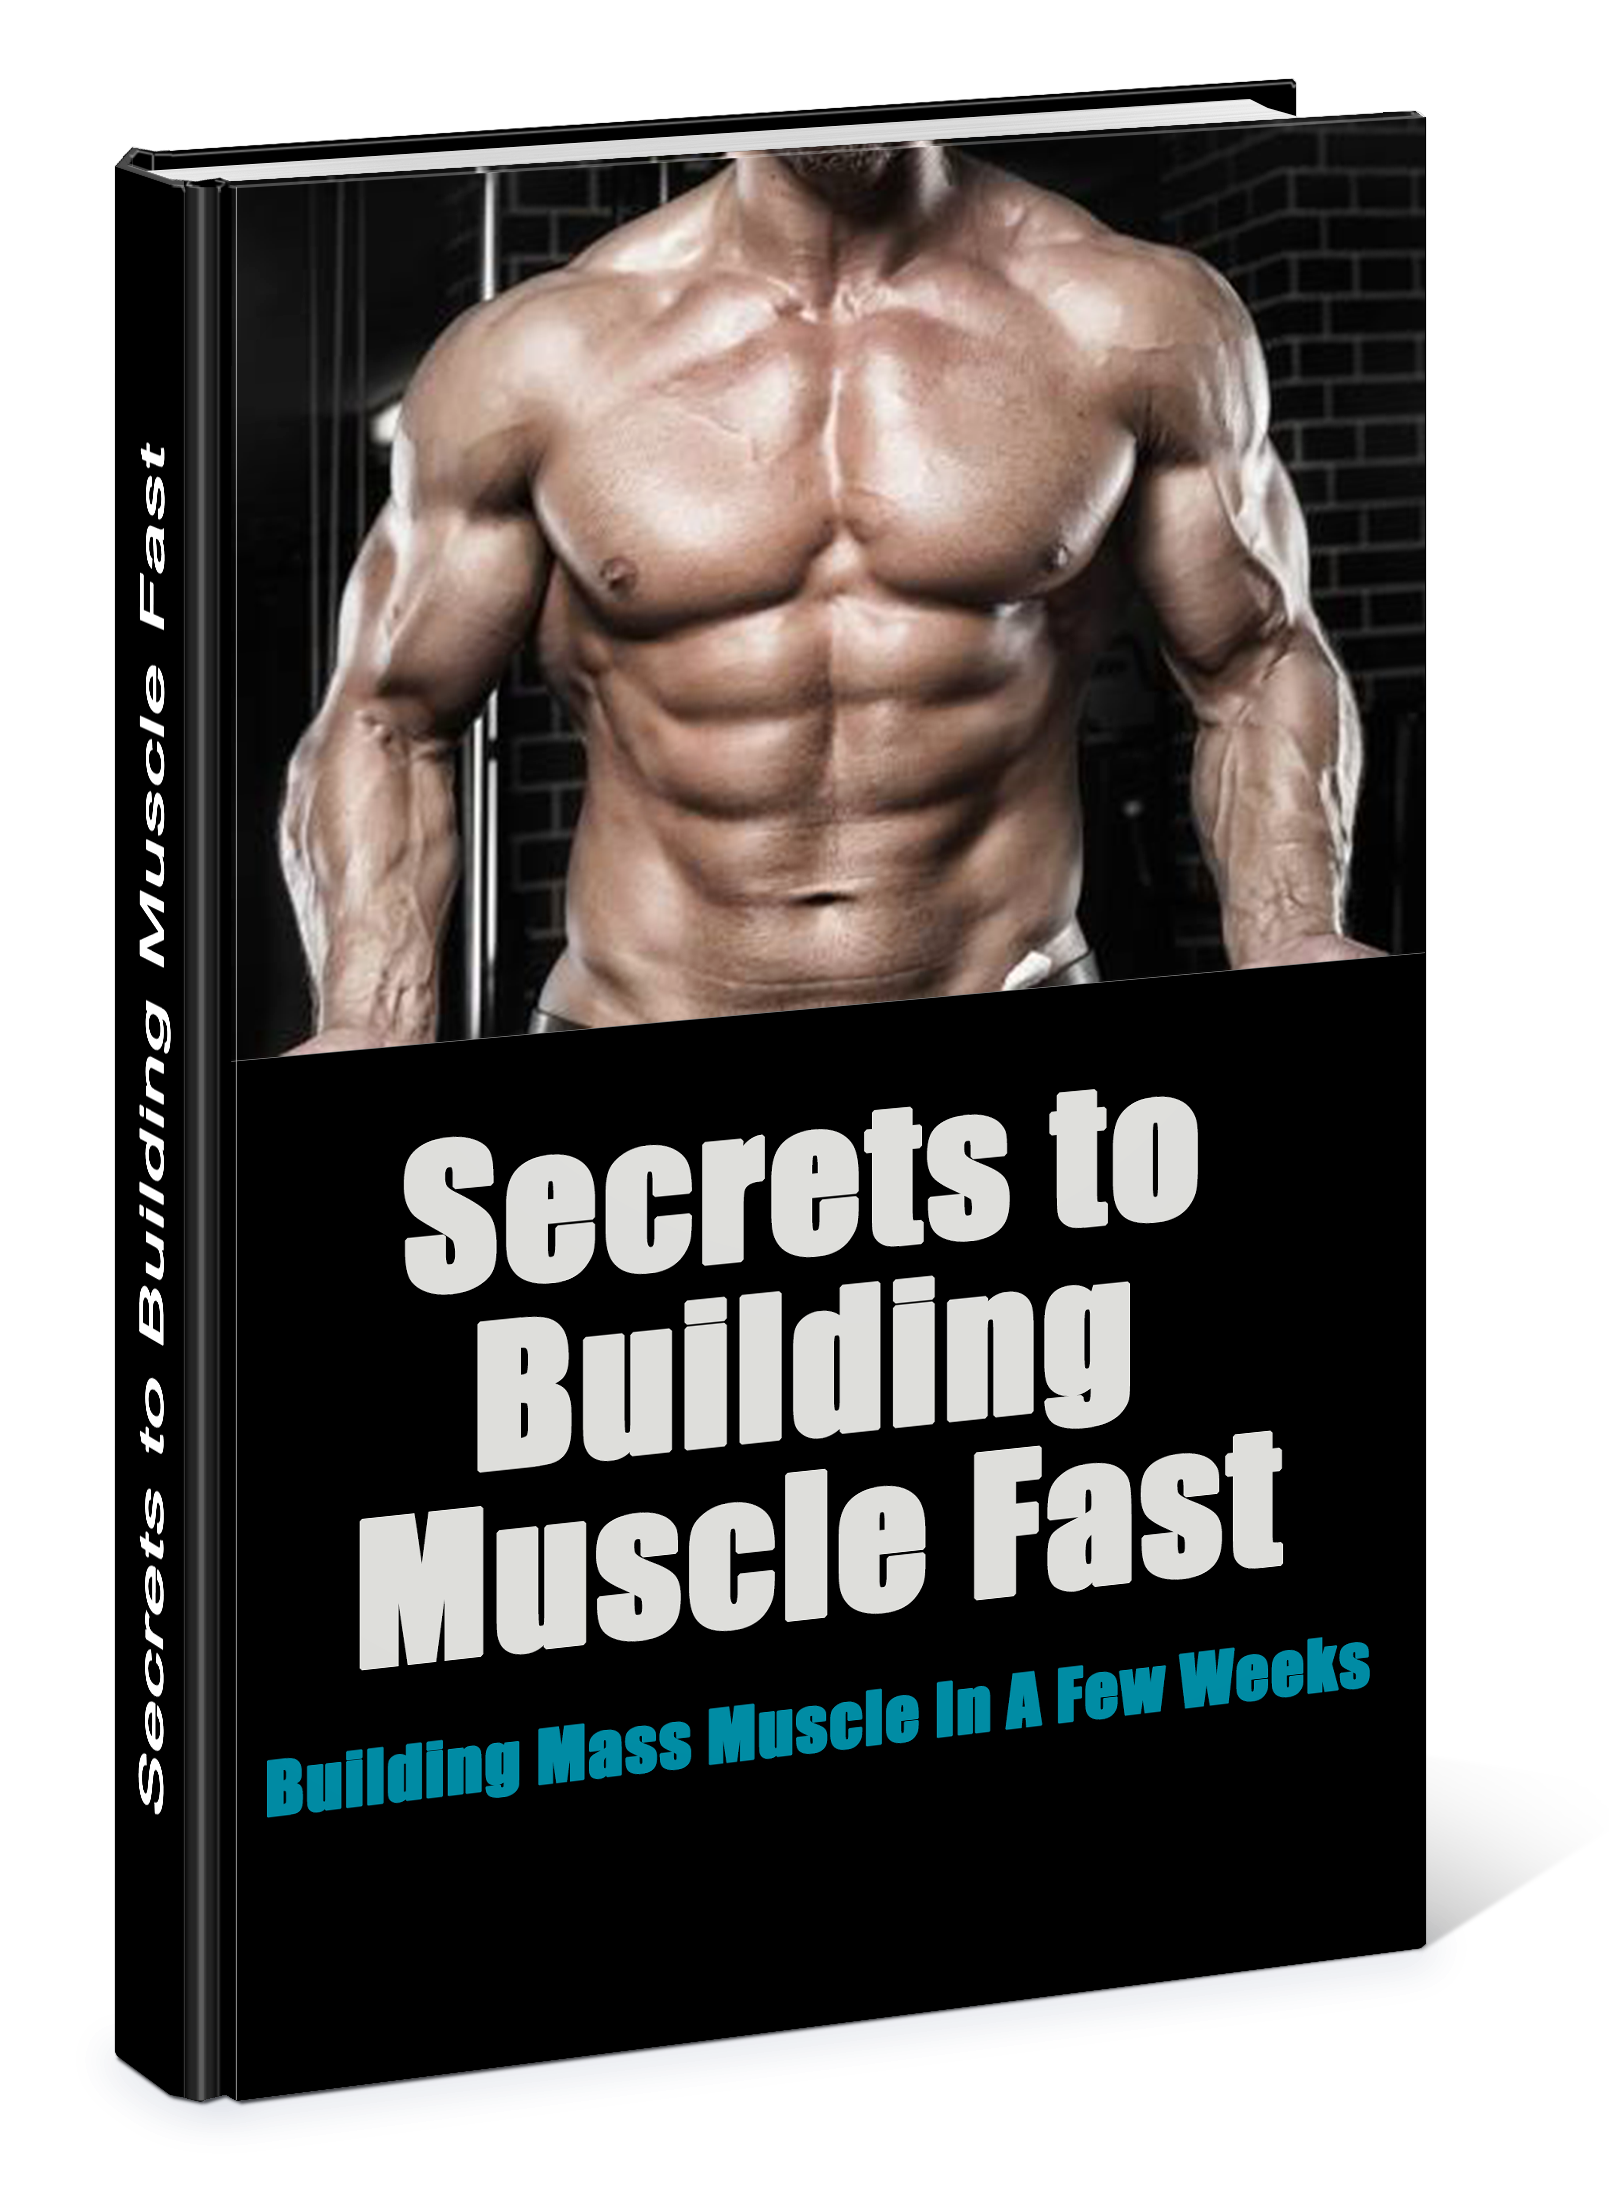 Secrets-to-Building-Muscle-Fast.png